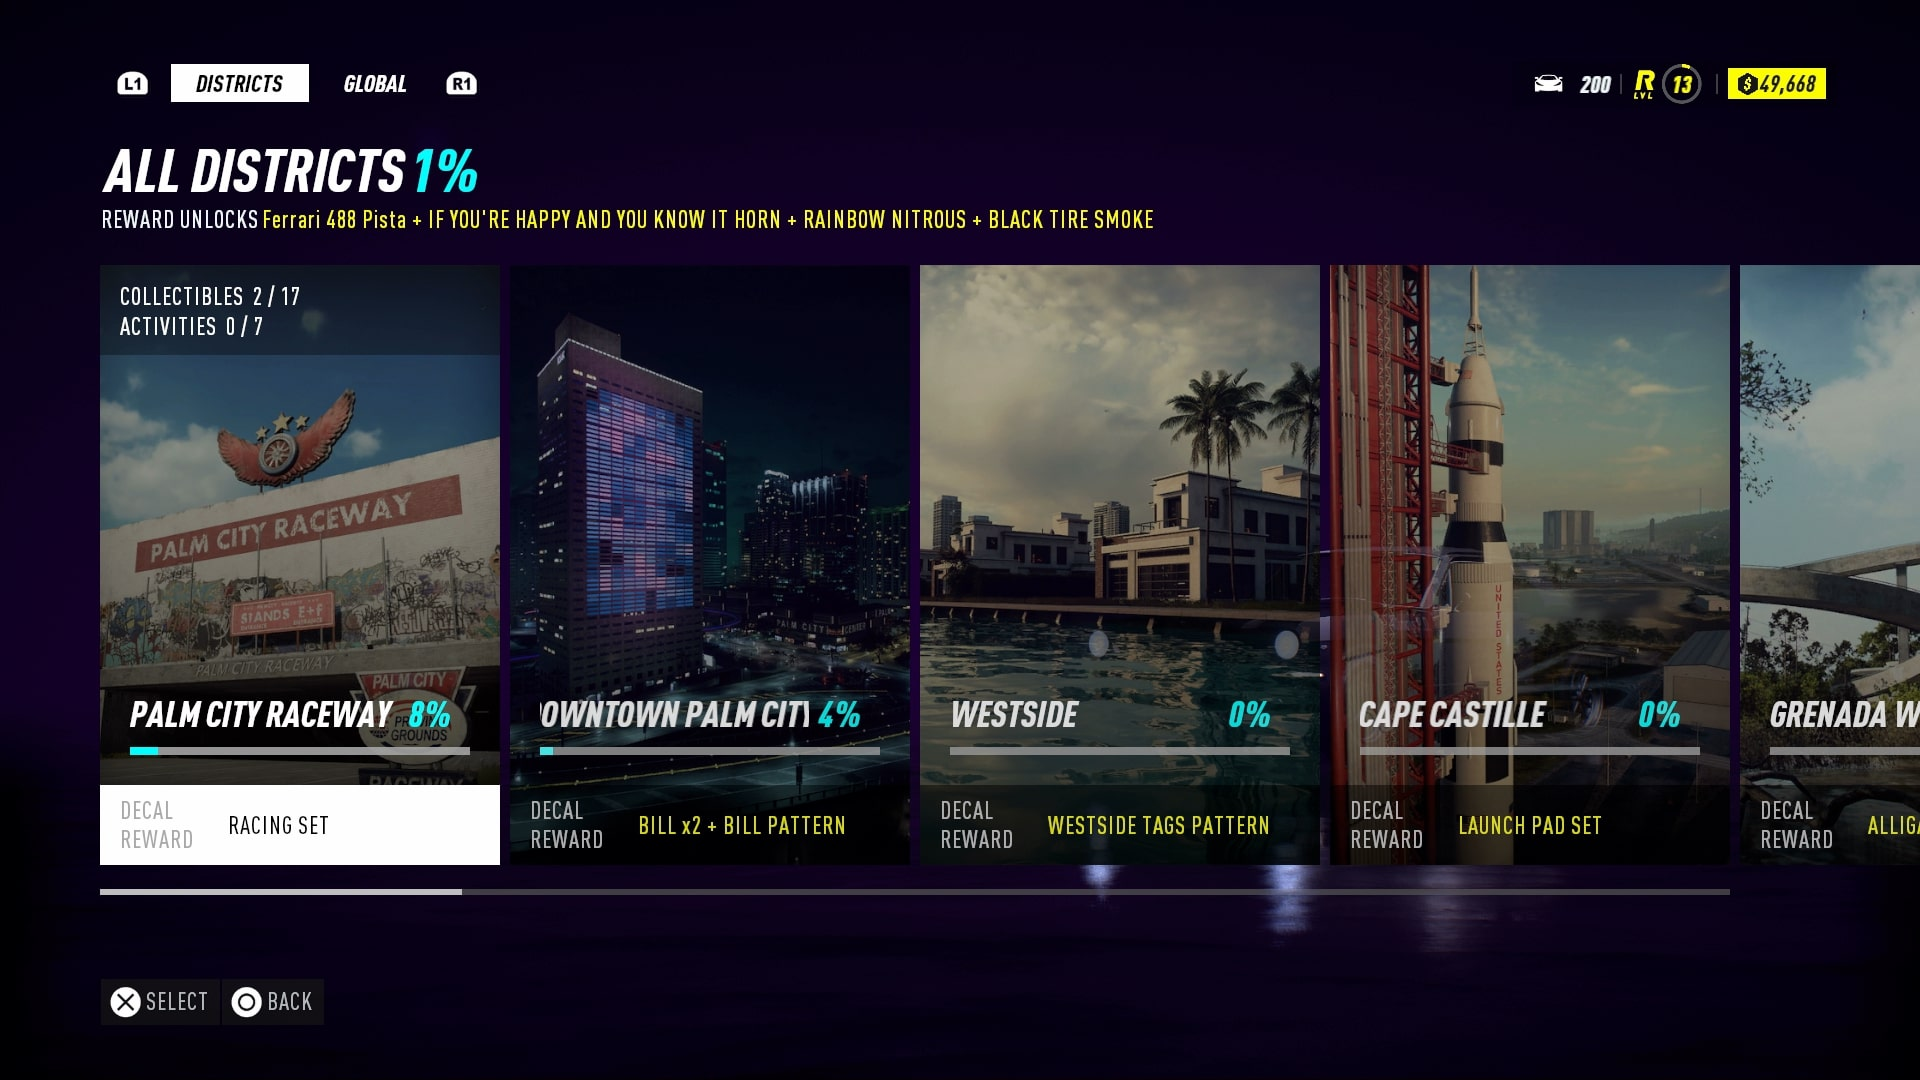 How To Find All The Collectibles And Activities In Need For Speed